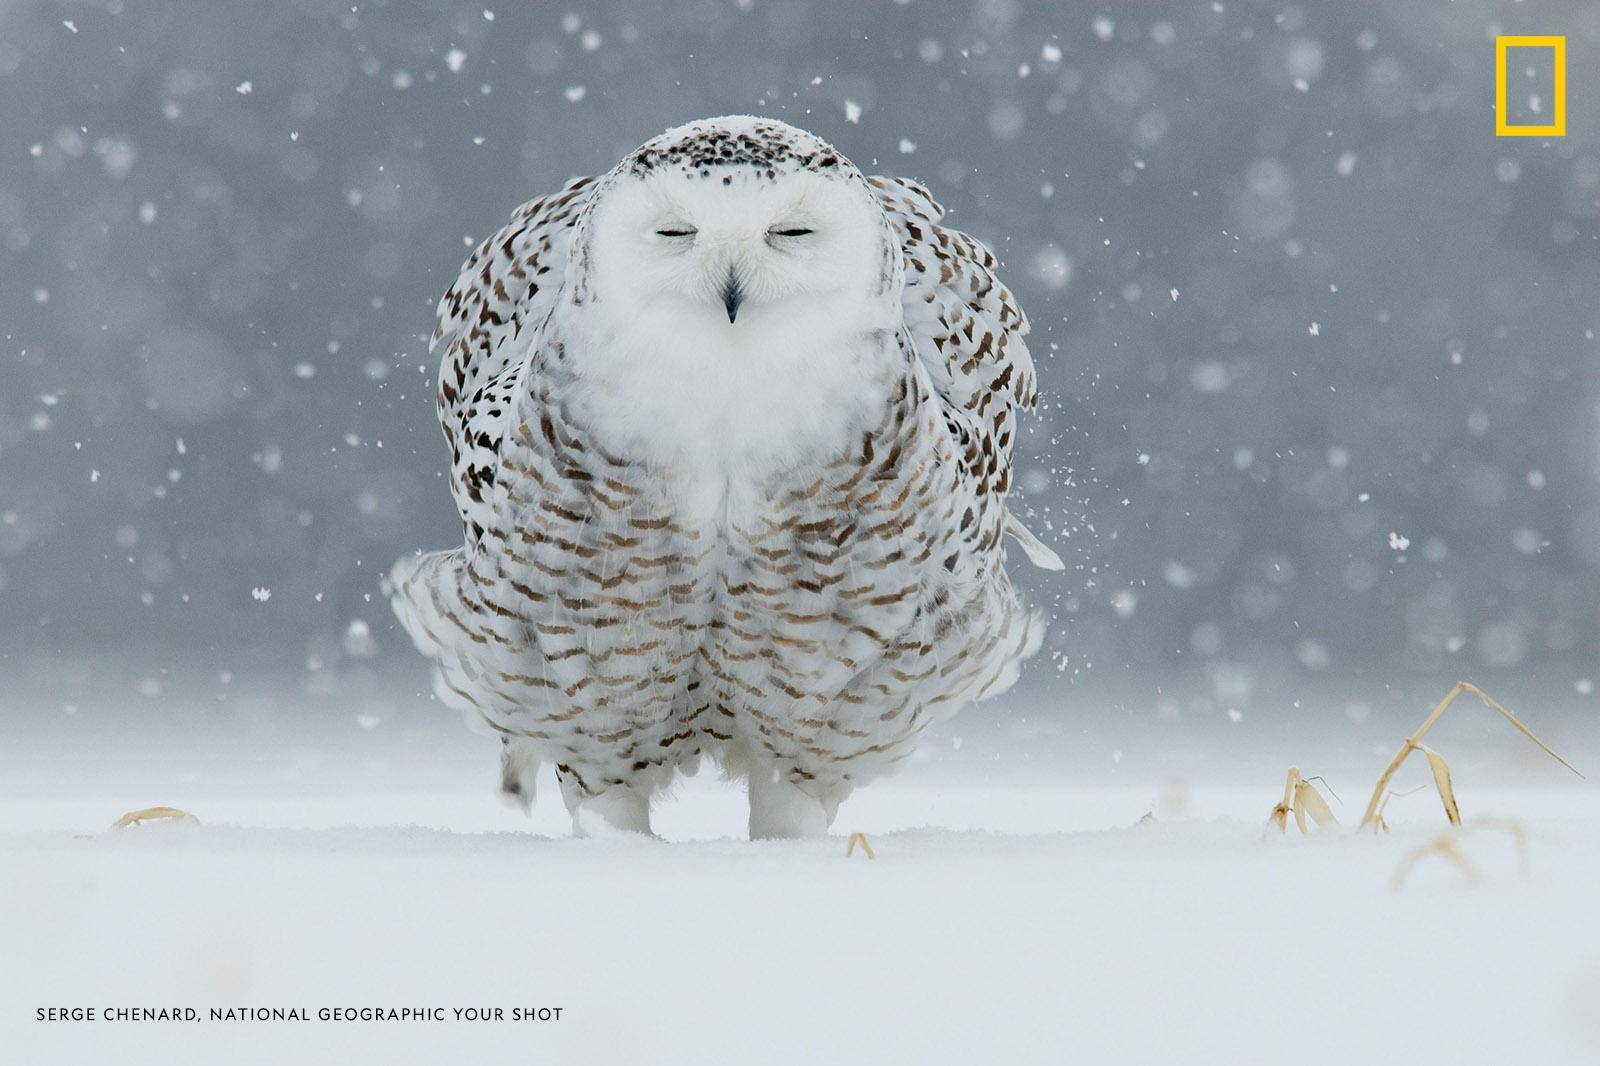 """I crawled very slowly on the ground, only a short distance,"" writes Your Shot photographer Serge Chenard. ""Suddenly, the snow begins, and once I was able to stabilize my camera on the ground, I documented this beautiful scene."" https://on.natgeo.com/2JX5ny2"